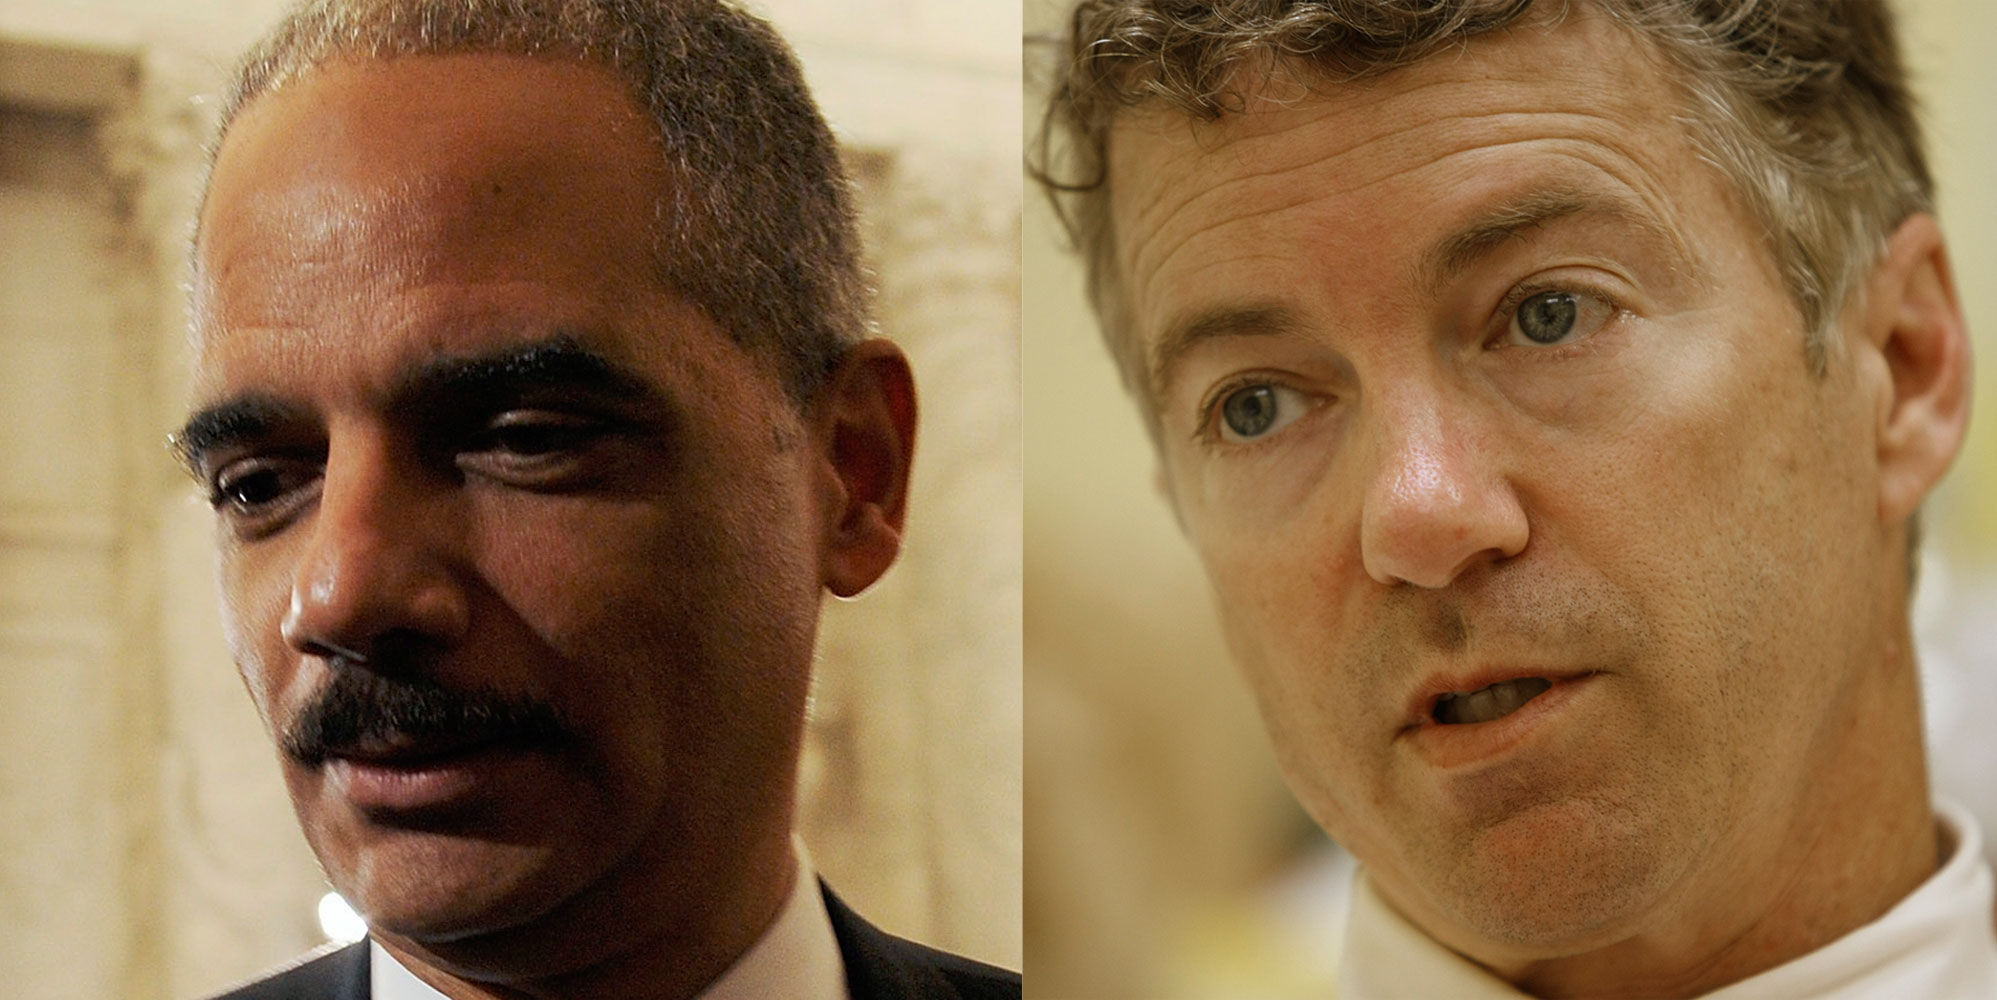 Attorney-General-Eric-Holder-ReutersJonathan-Ernst-and-Kentucky-Senator-Rand-Paul-AP-PhotoEd-Reinke